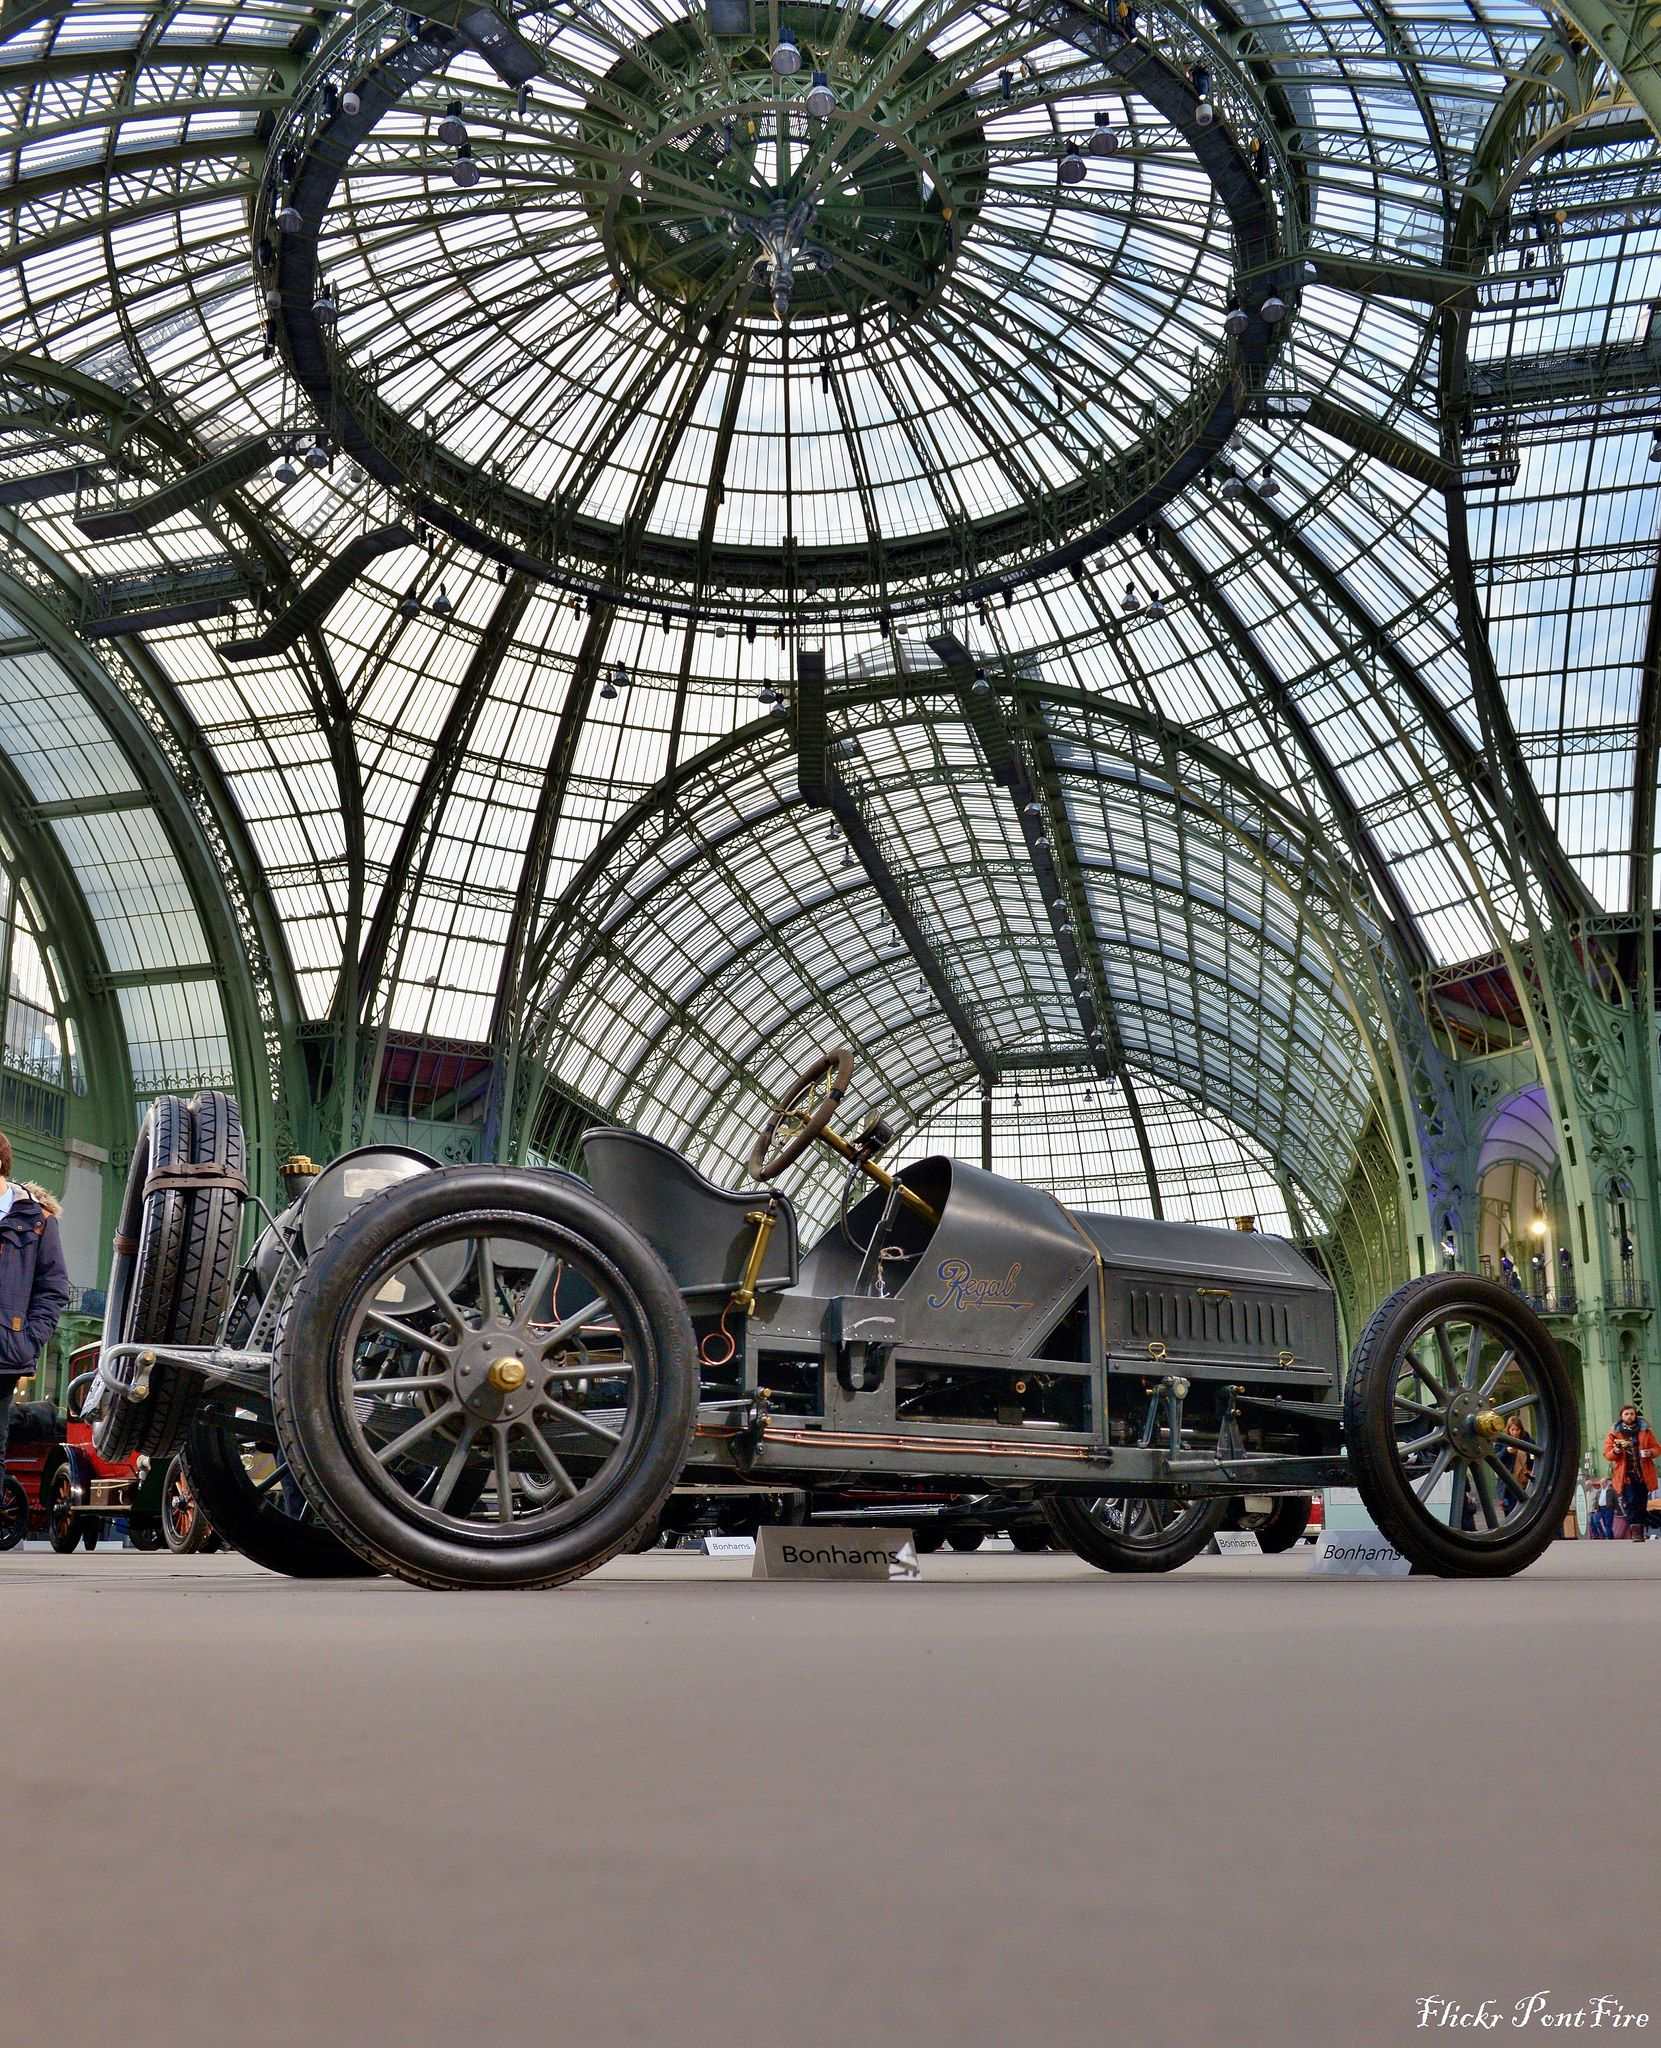 1912 Regal 25 hp model N runabout | American sports, Engine and Cars